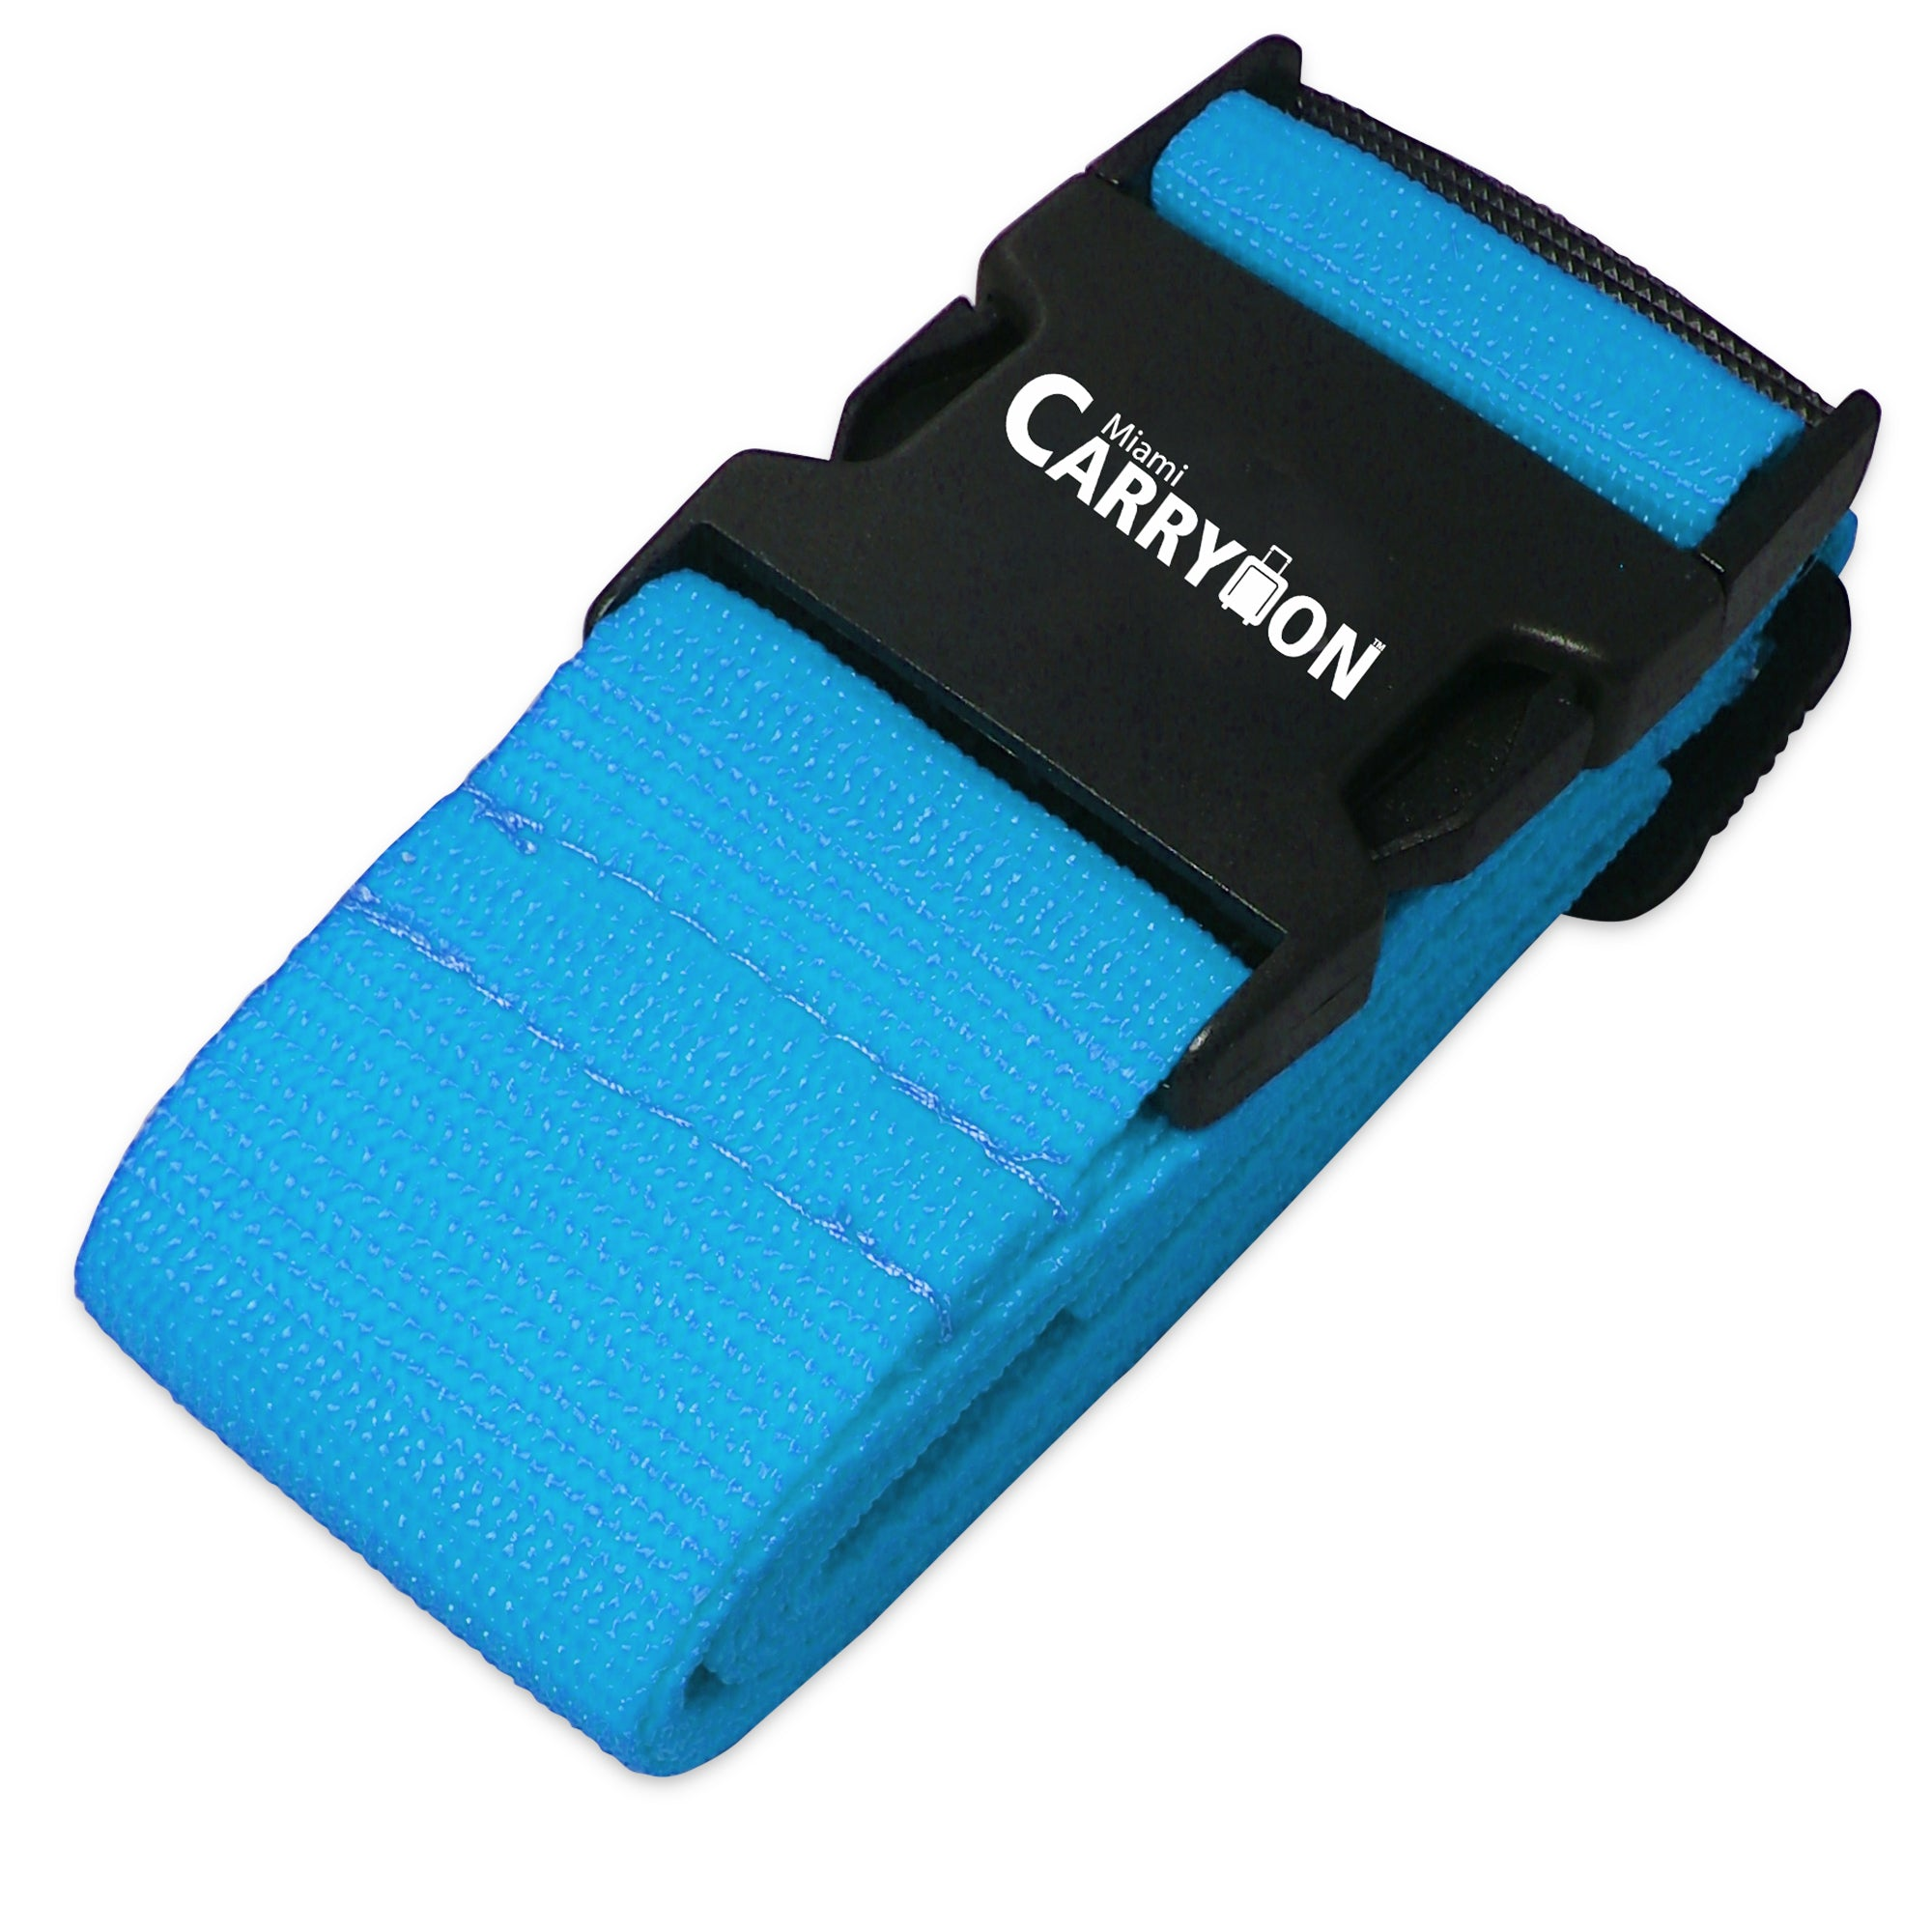 Single Luggage Strap - Light Blue - Travellty